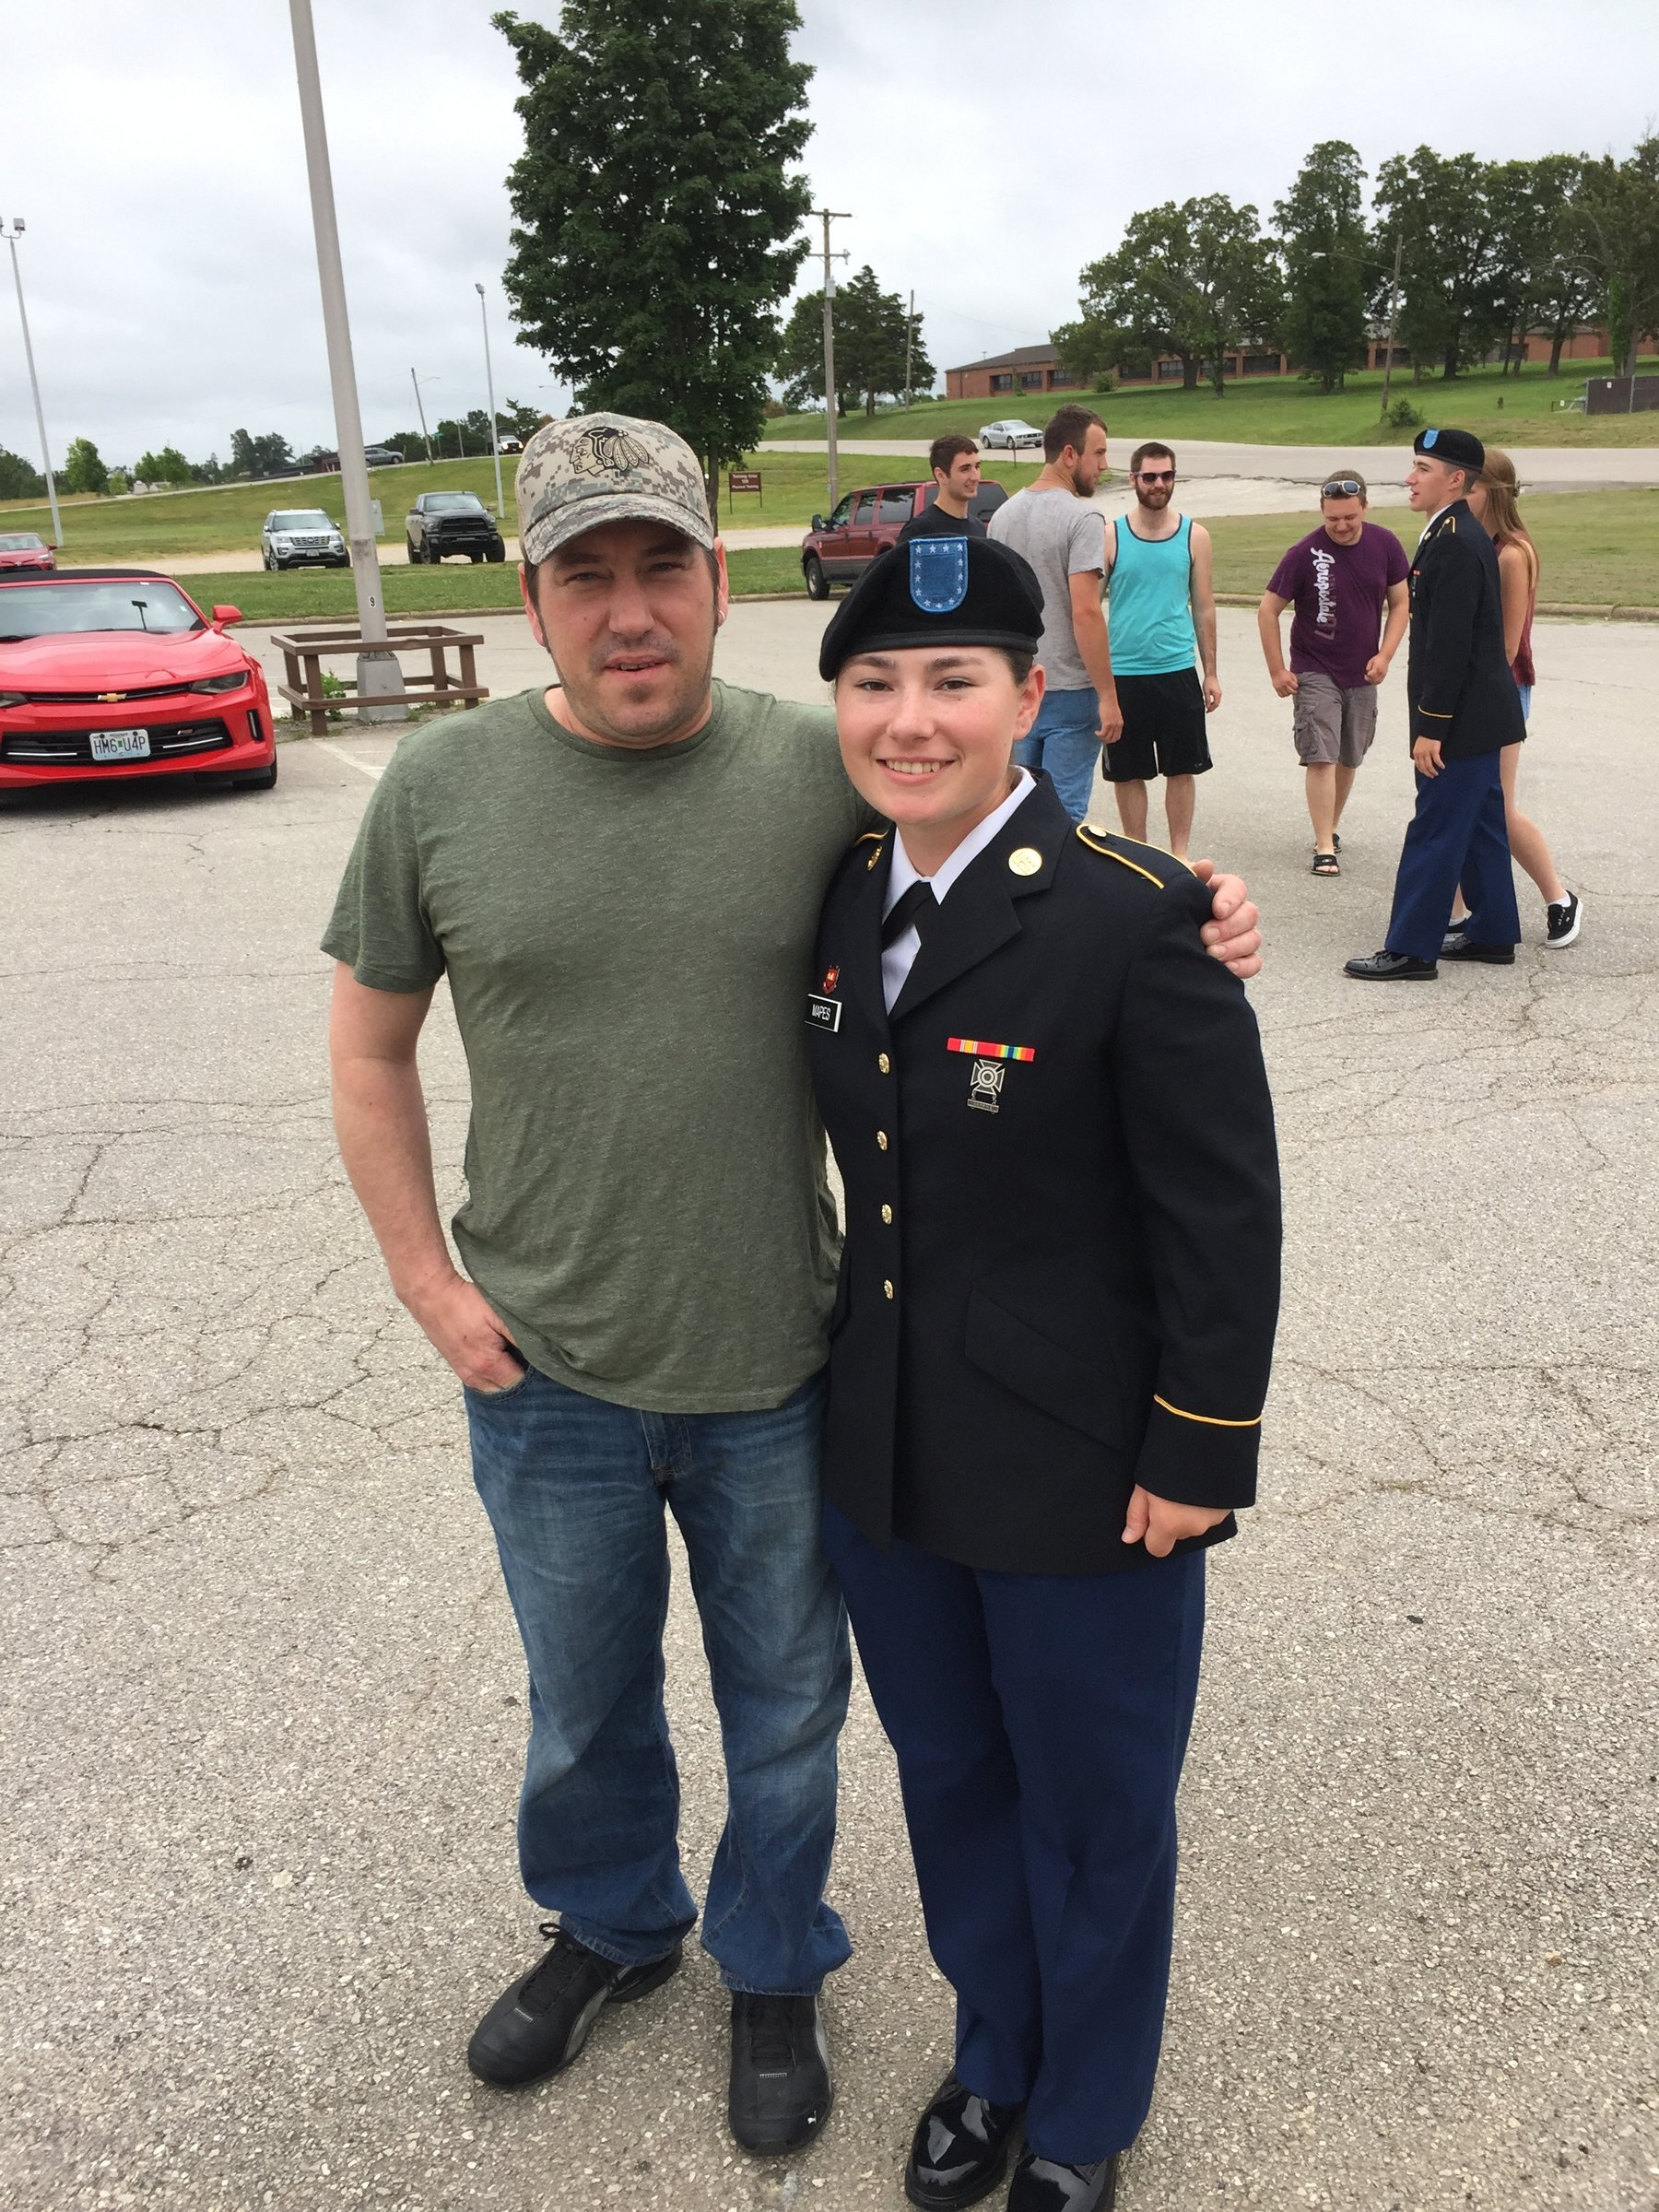 Ian Eckles, pictured with his daughter Audrie, who lives in Colorado, was immensely proud of her service in the U.S. Army. Eckles, who lived in Kent, disappeared May 16 in rural Kittitas County and is presumed dead. After a 23-day manhunt, Jorge Alcantara Gonzalez, 34, was arrested and booked on a second-degree murder charge in connection with Eckles' homicide.  (Courtesy of / the Eckles family)